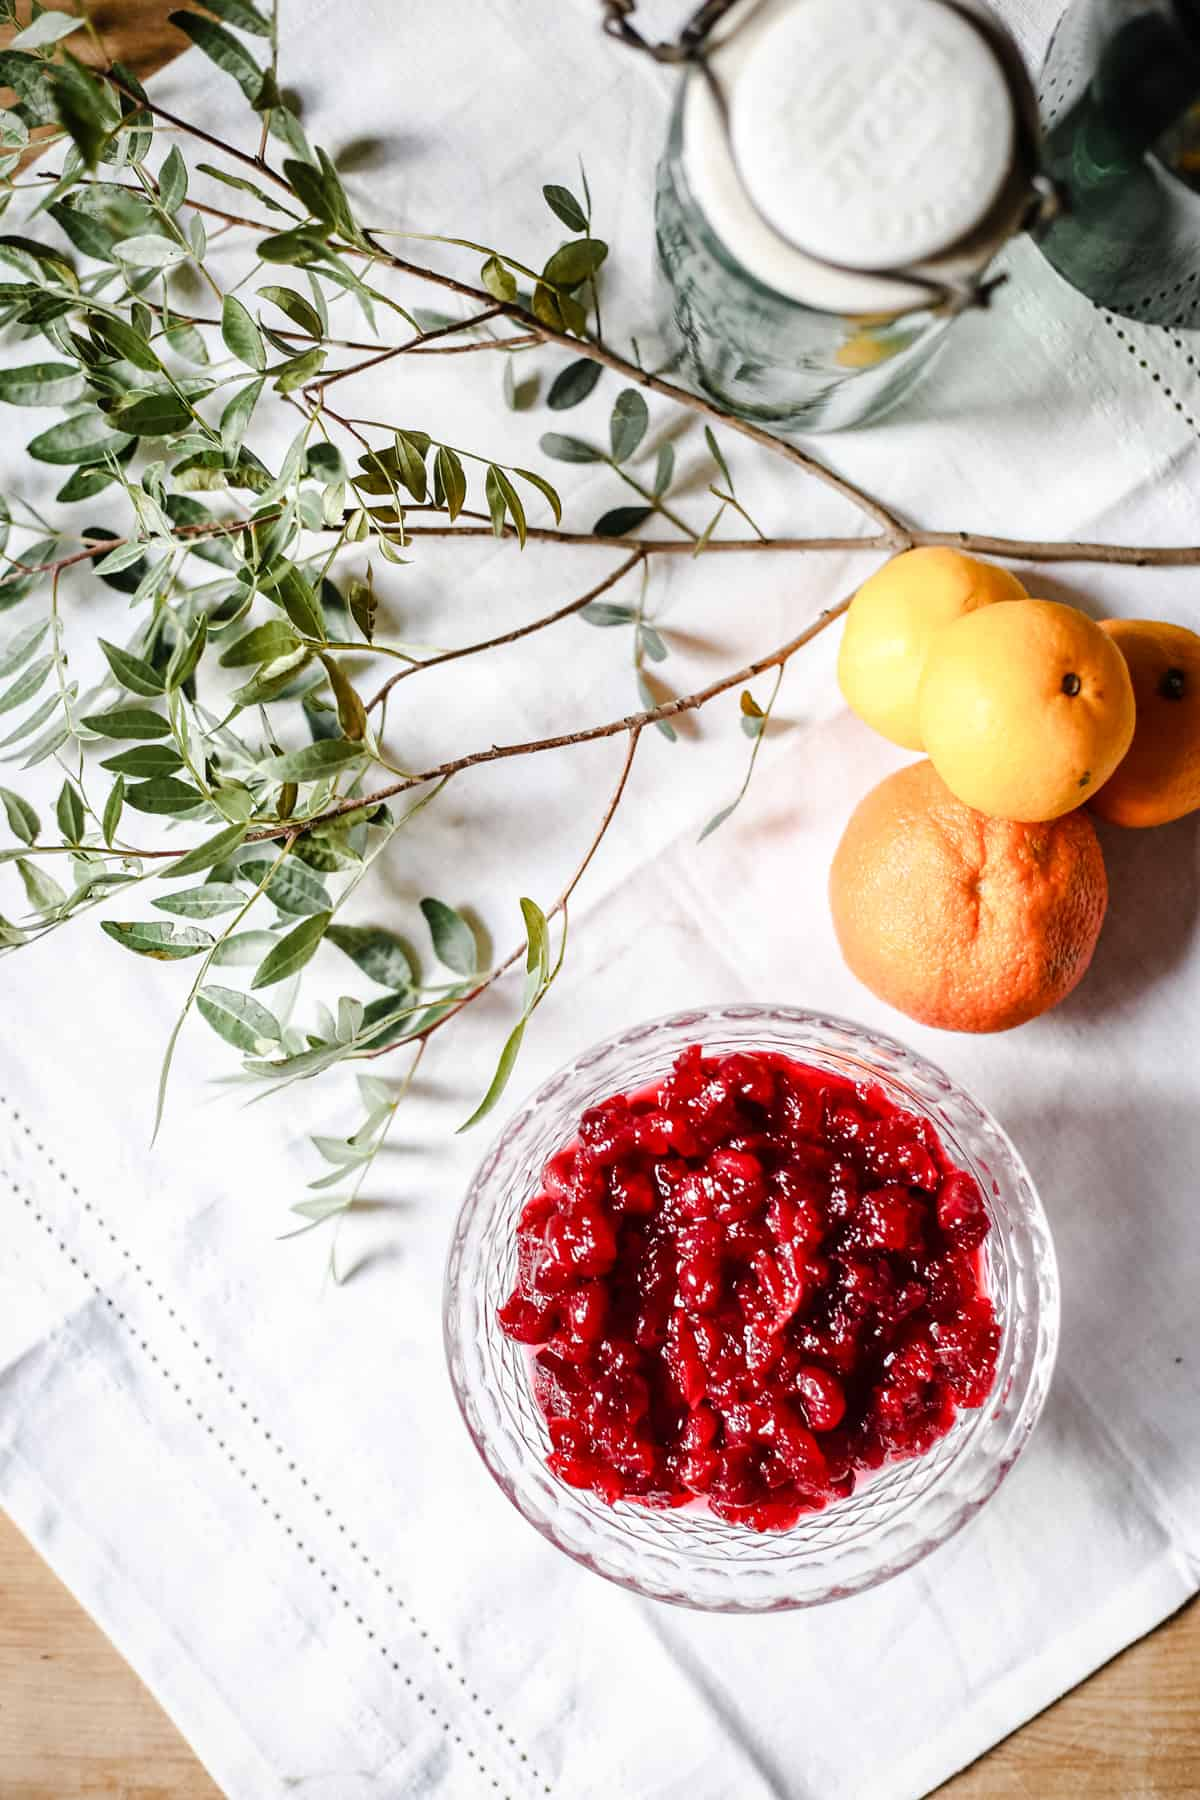 Cranberry Clementine Sauce on a white tablecloth surrounded by clementines and greenery